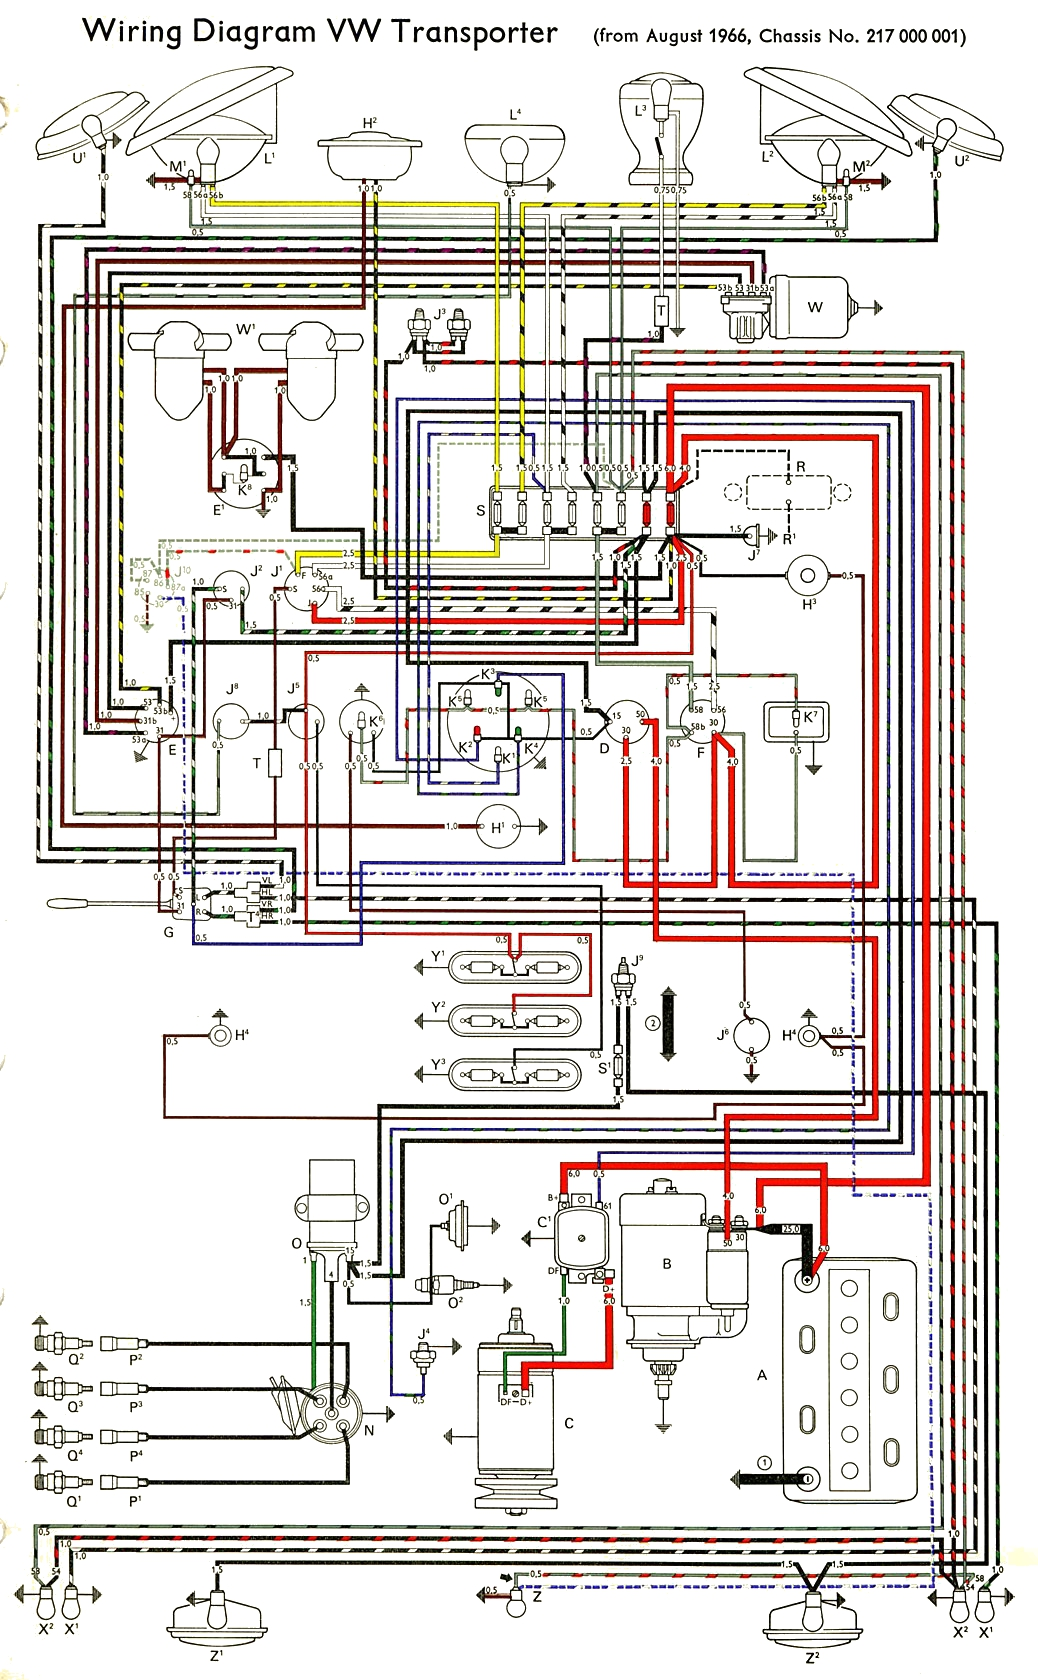 bus_67 thesamba com type 2 wiring diagrams 1973 vw wiring diagram at mifinder.co